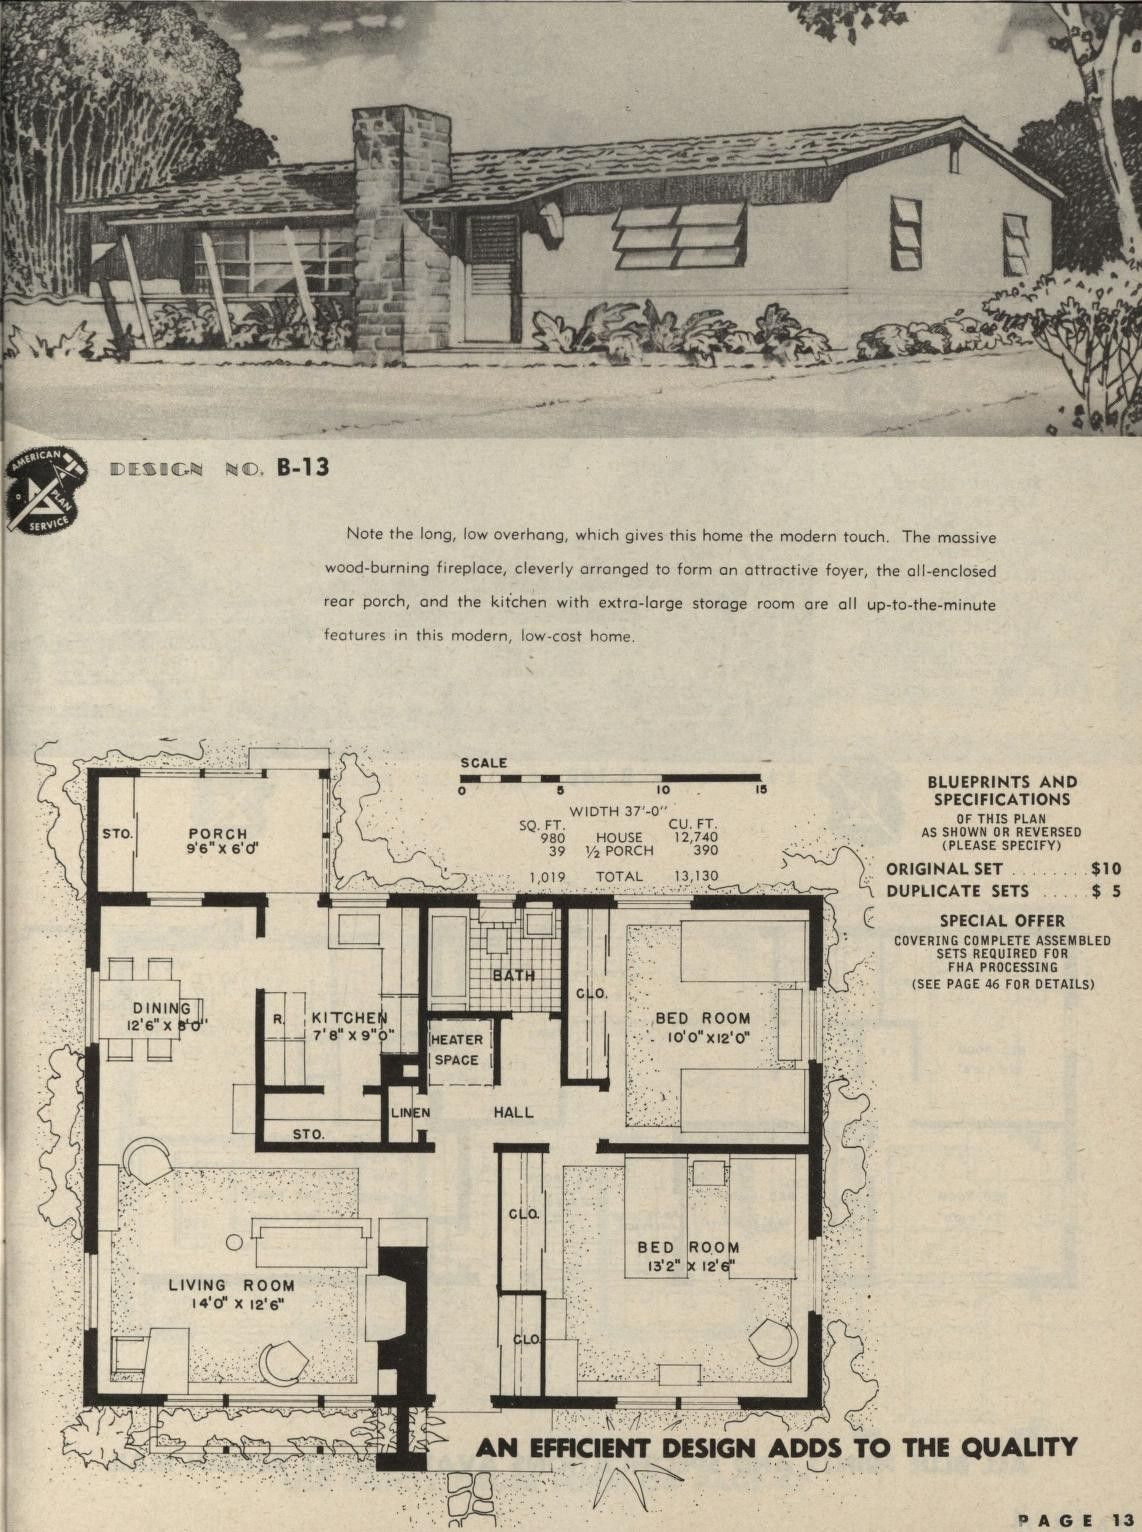 Pin By David Carr On Mid Century Modern Vintage House Plans Blueprints House Plans